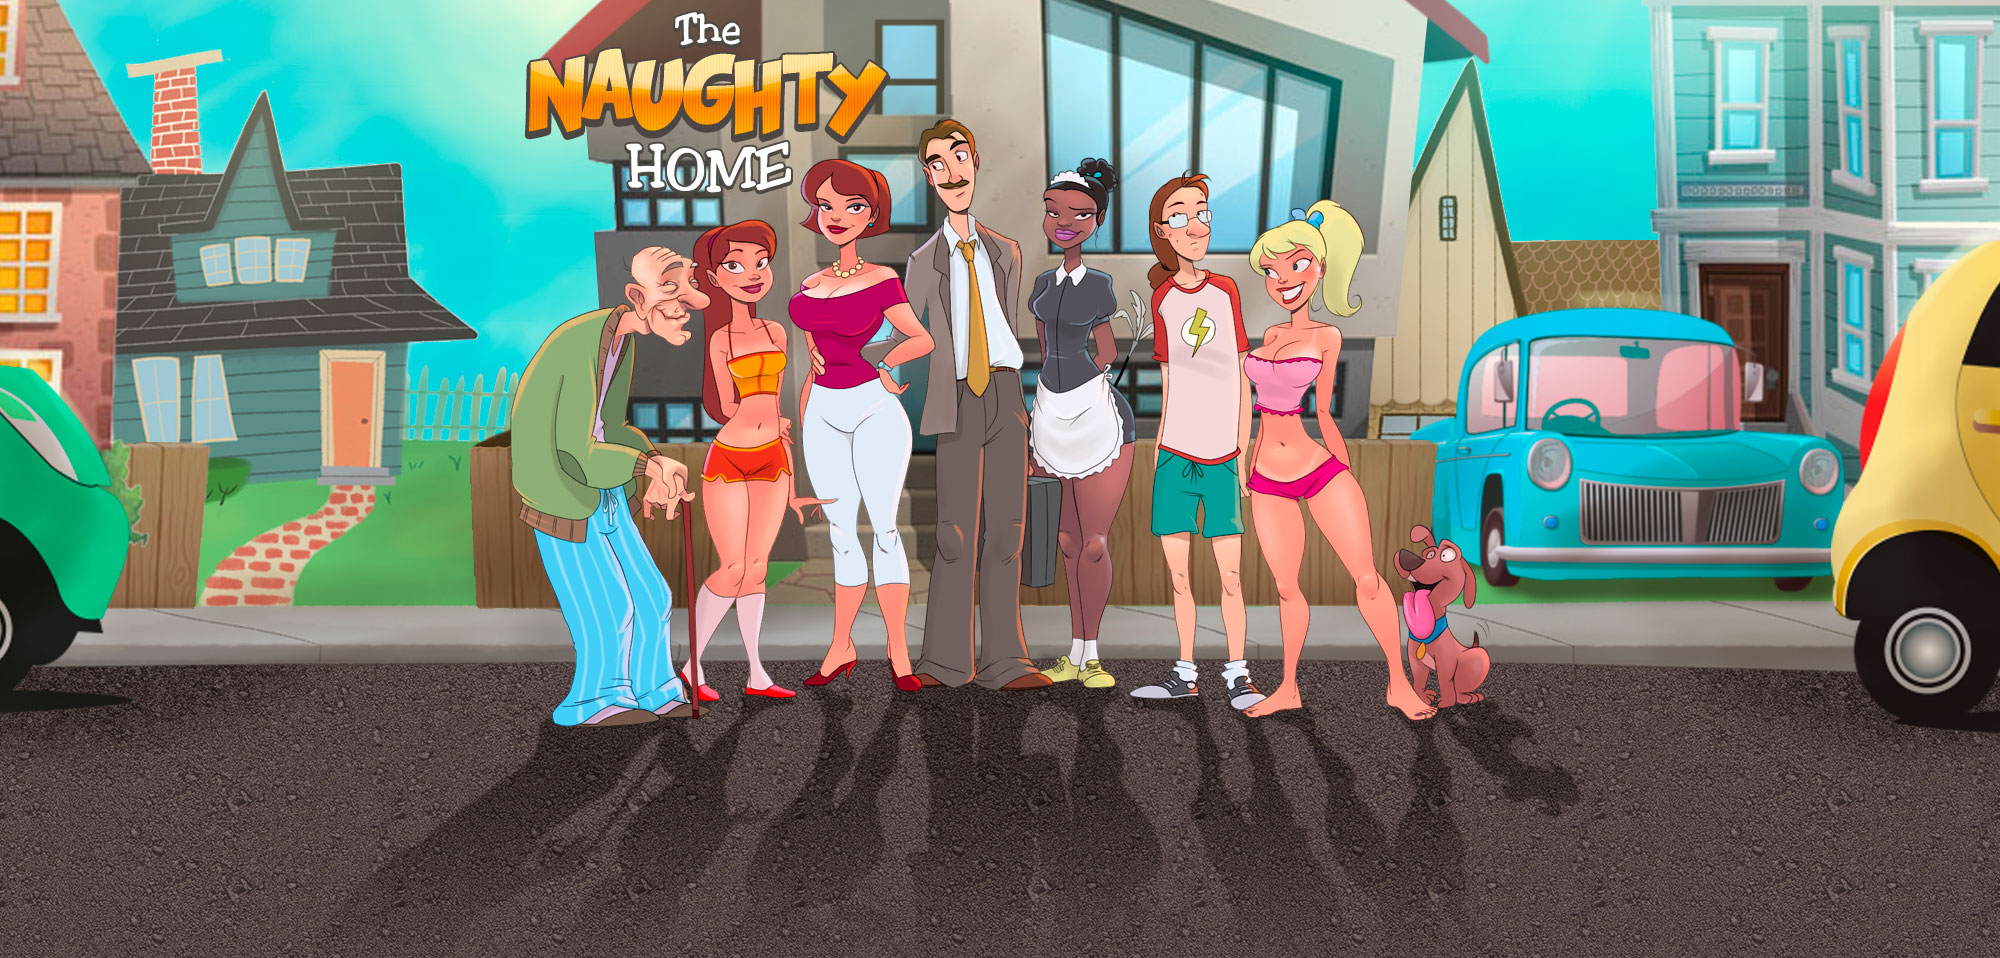 The Naughty Home - header